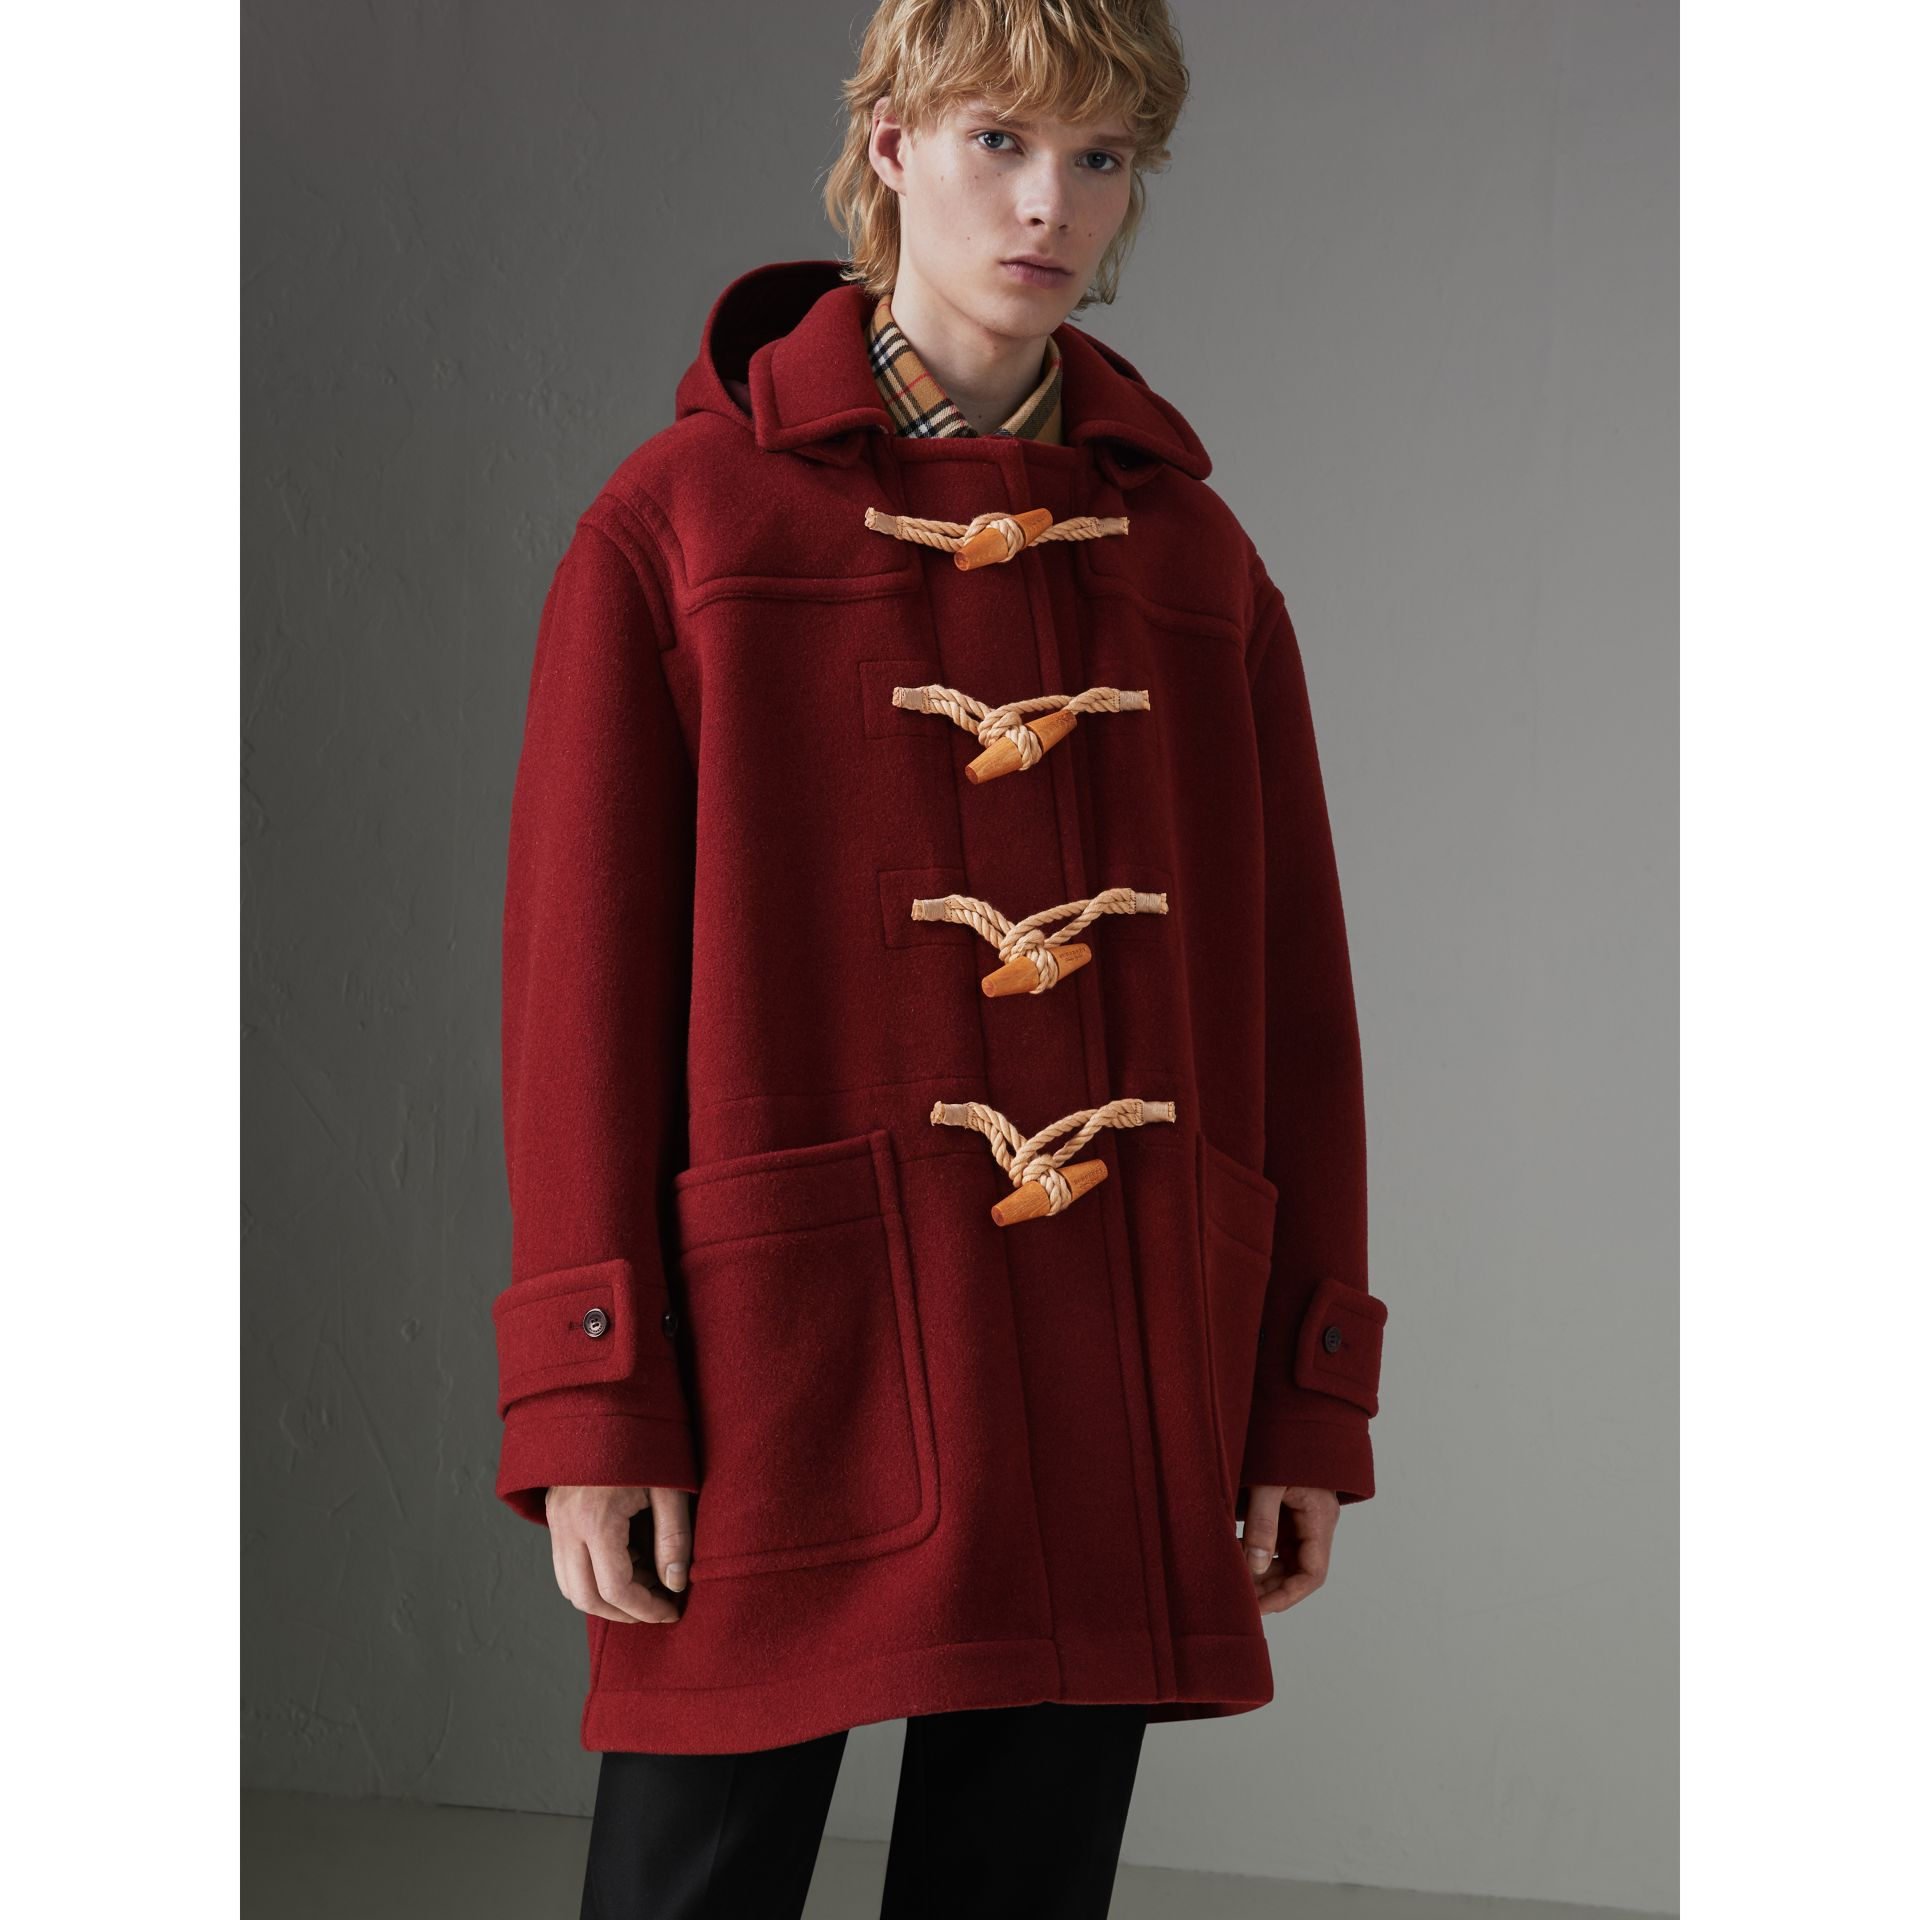 Gosha x Burberry Oversized Duffle Coat in Claret | Burberry - gallery image 6